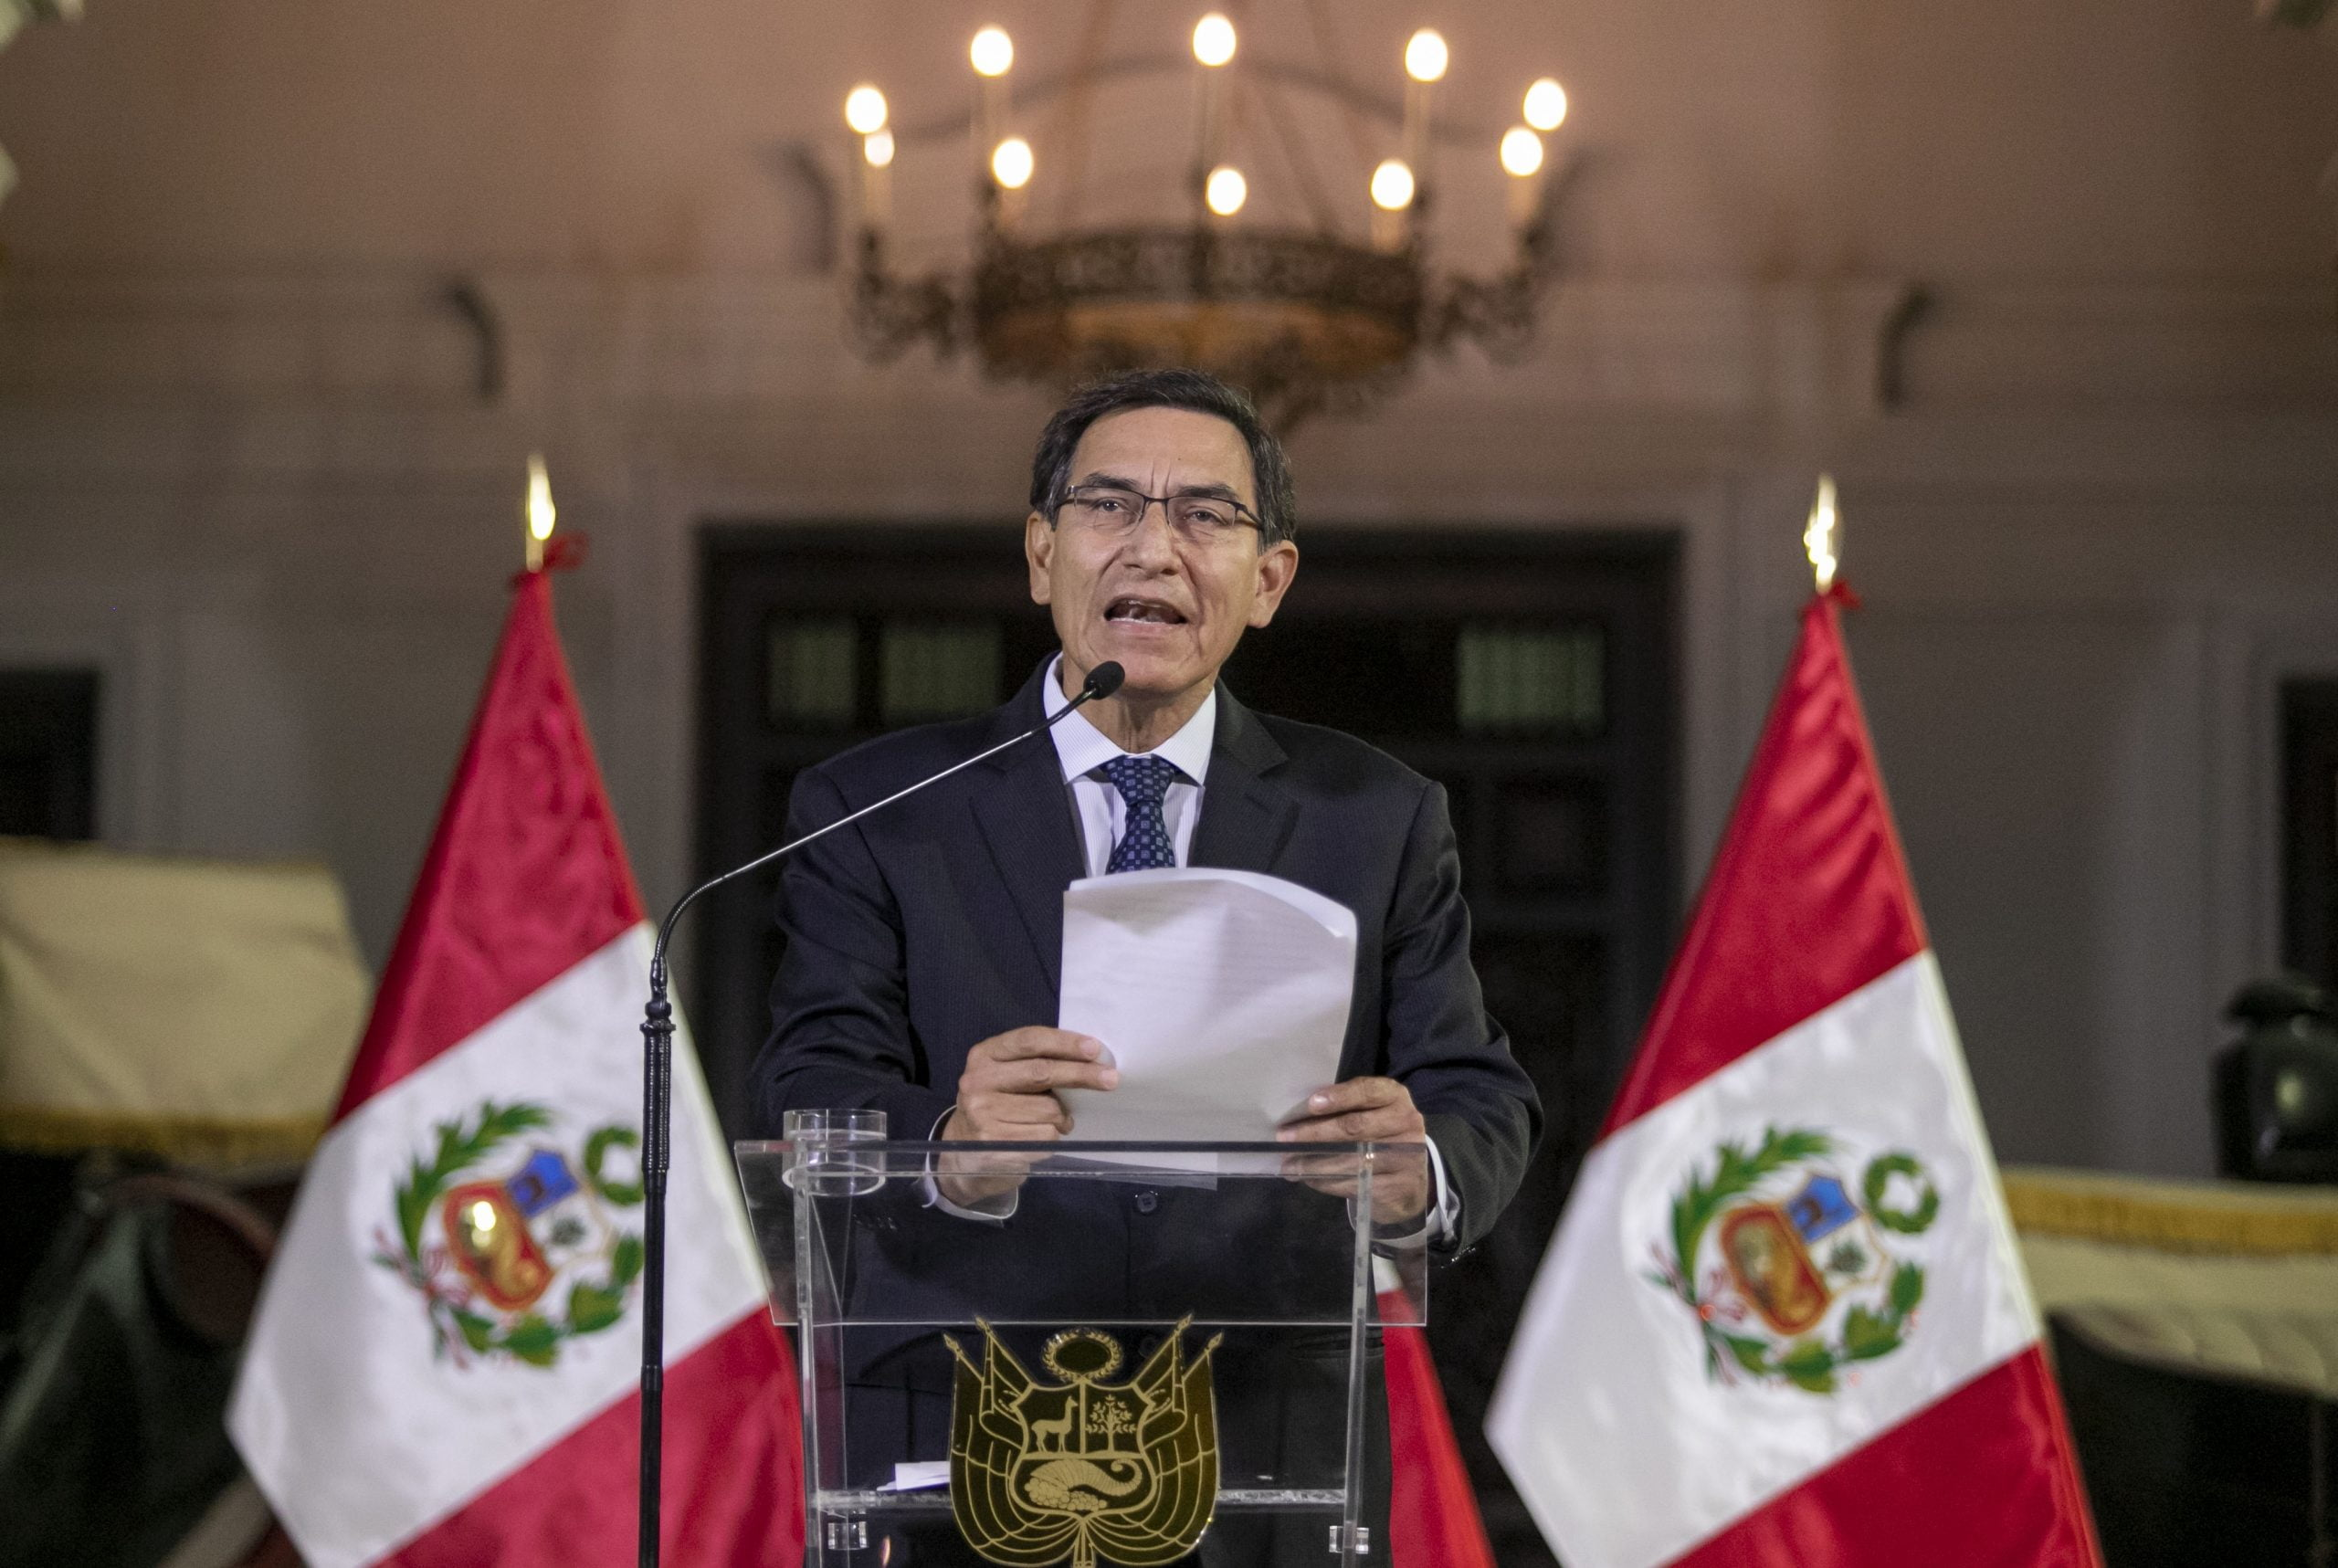 The approval rate of Vizcarra rises up to 75% after dissolving the Congress